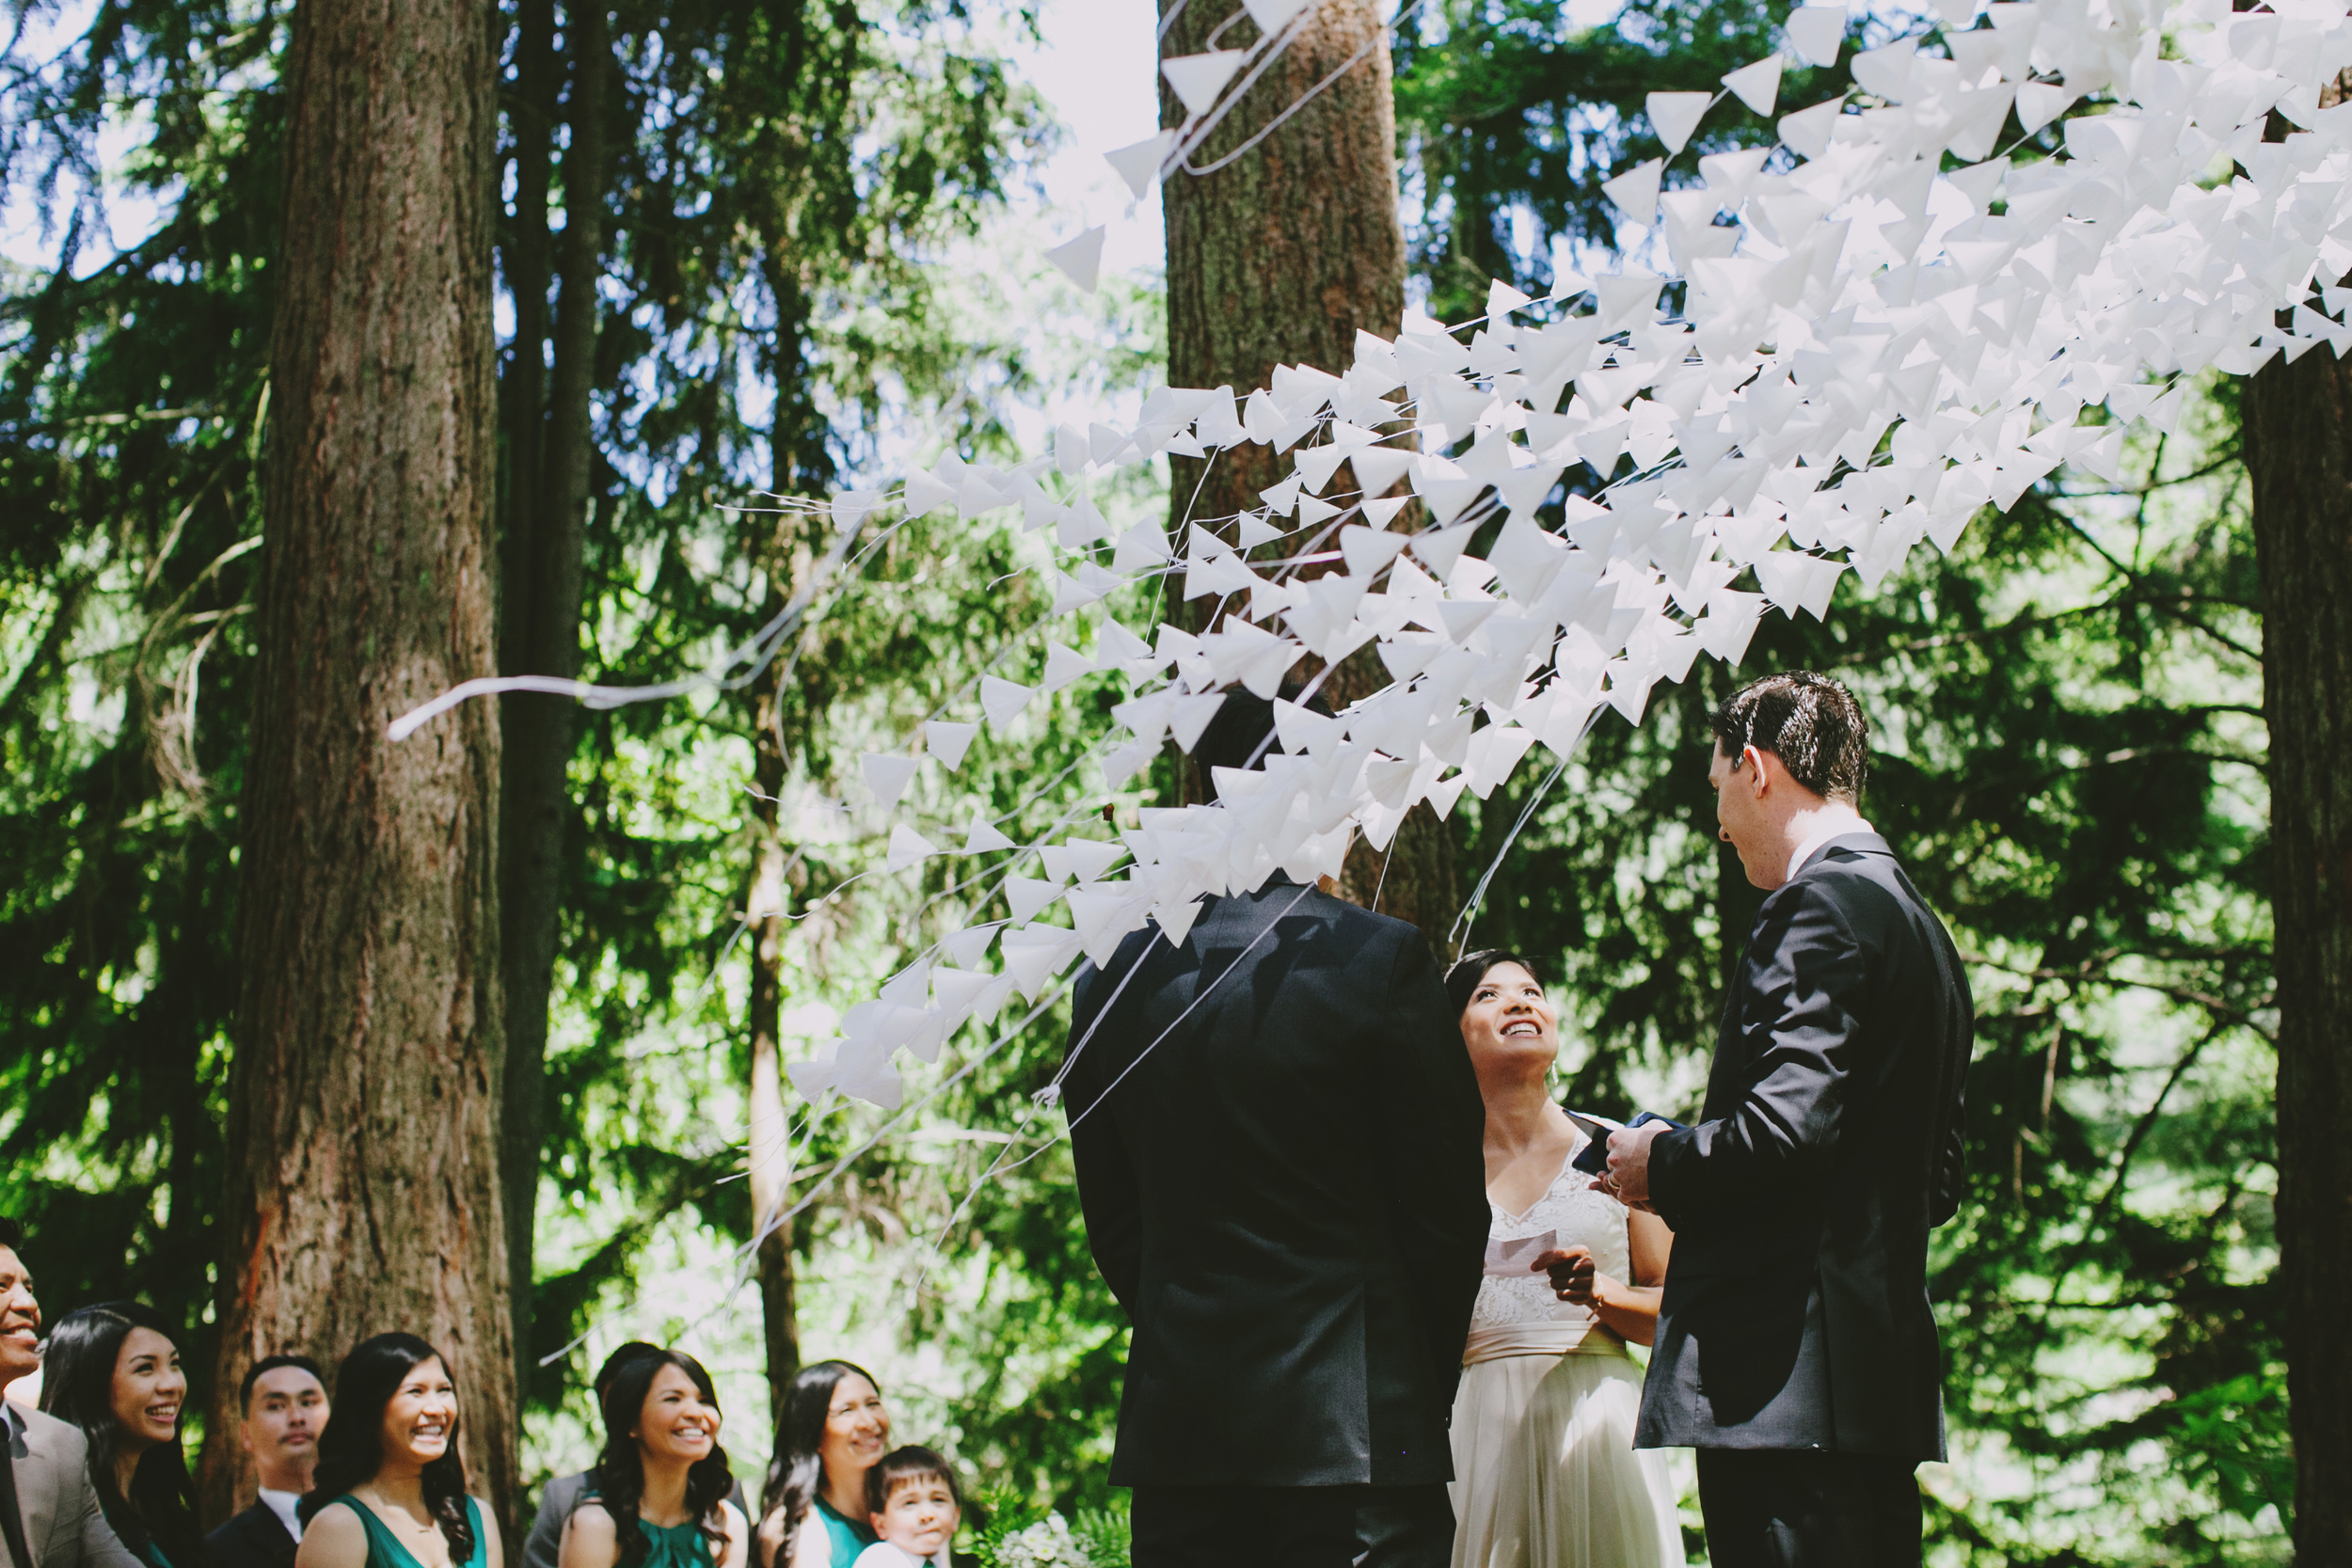 Tilden_Wedding_Berkeley-10.JPG